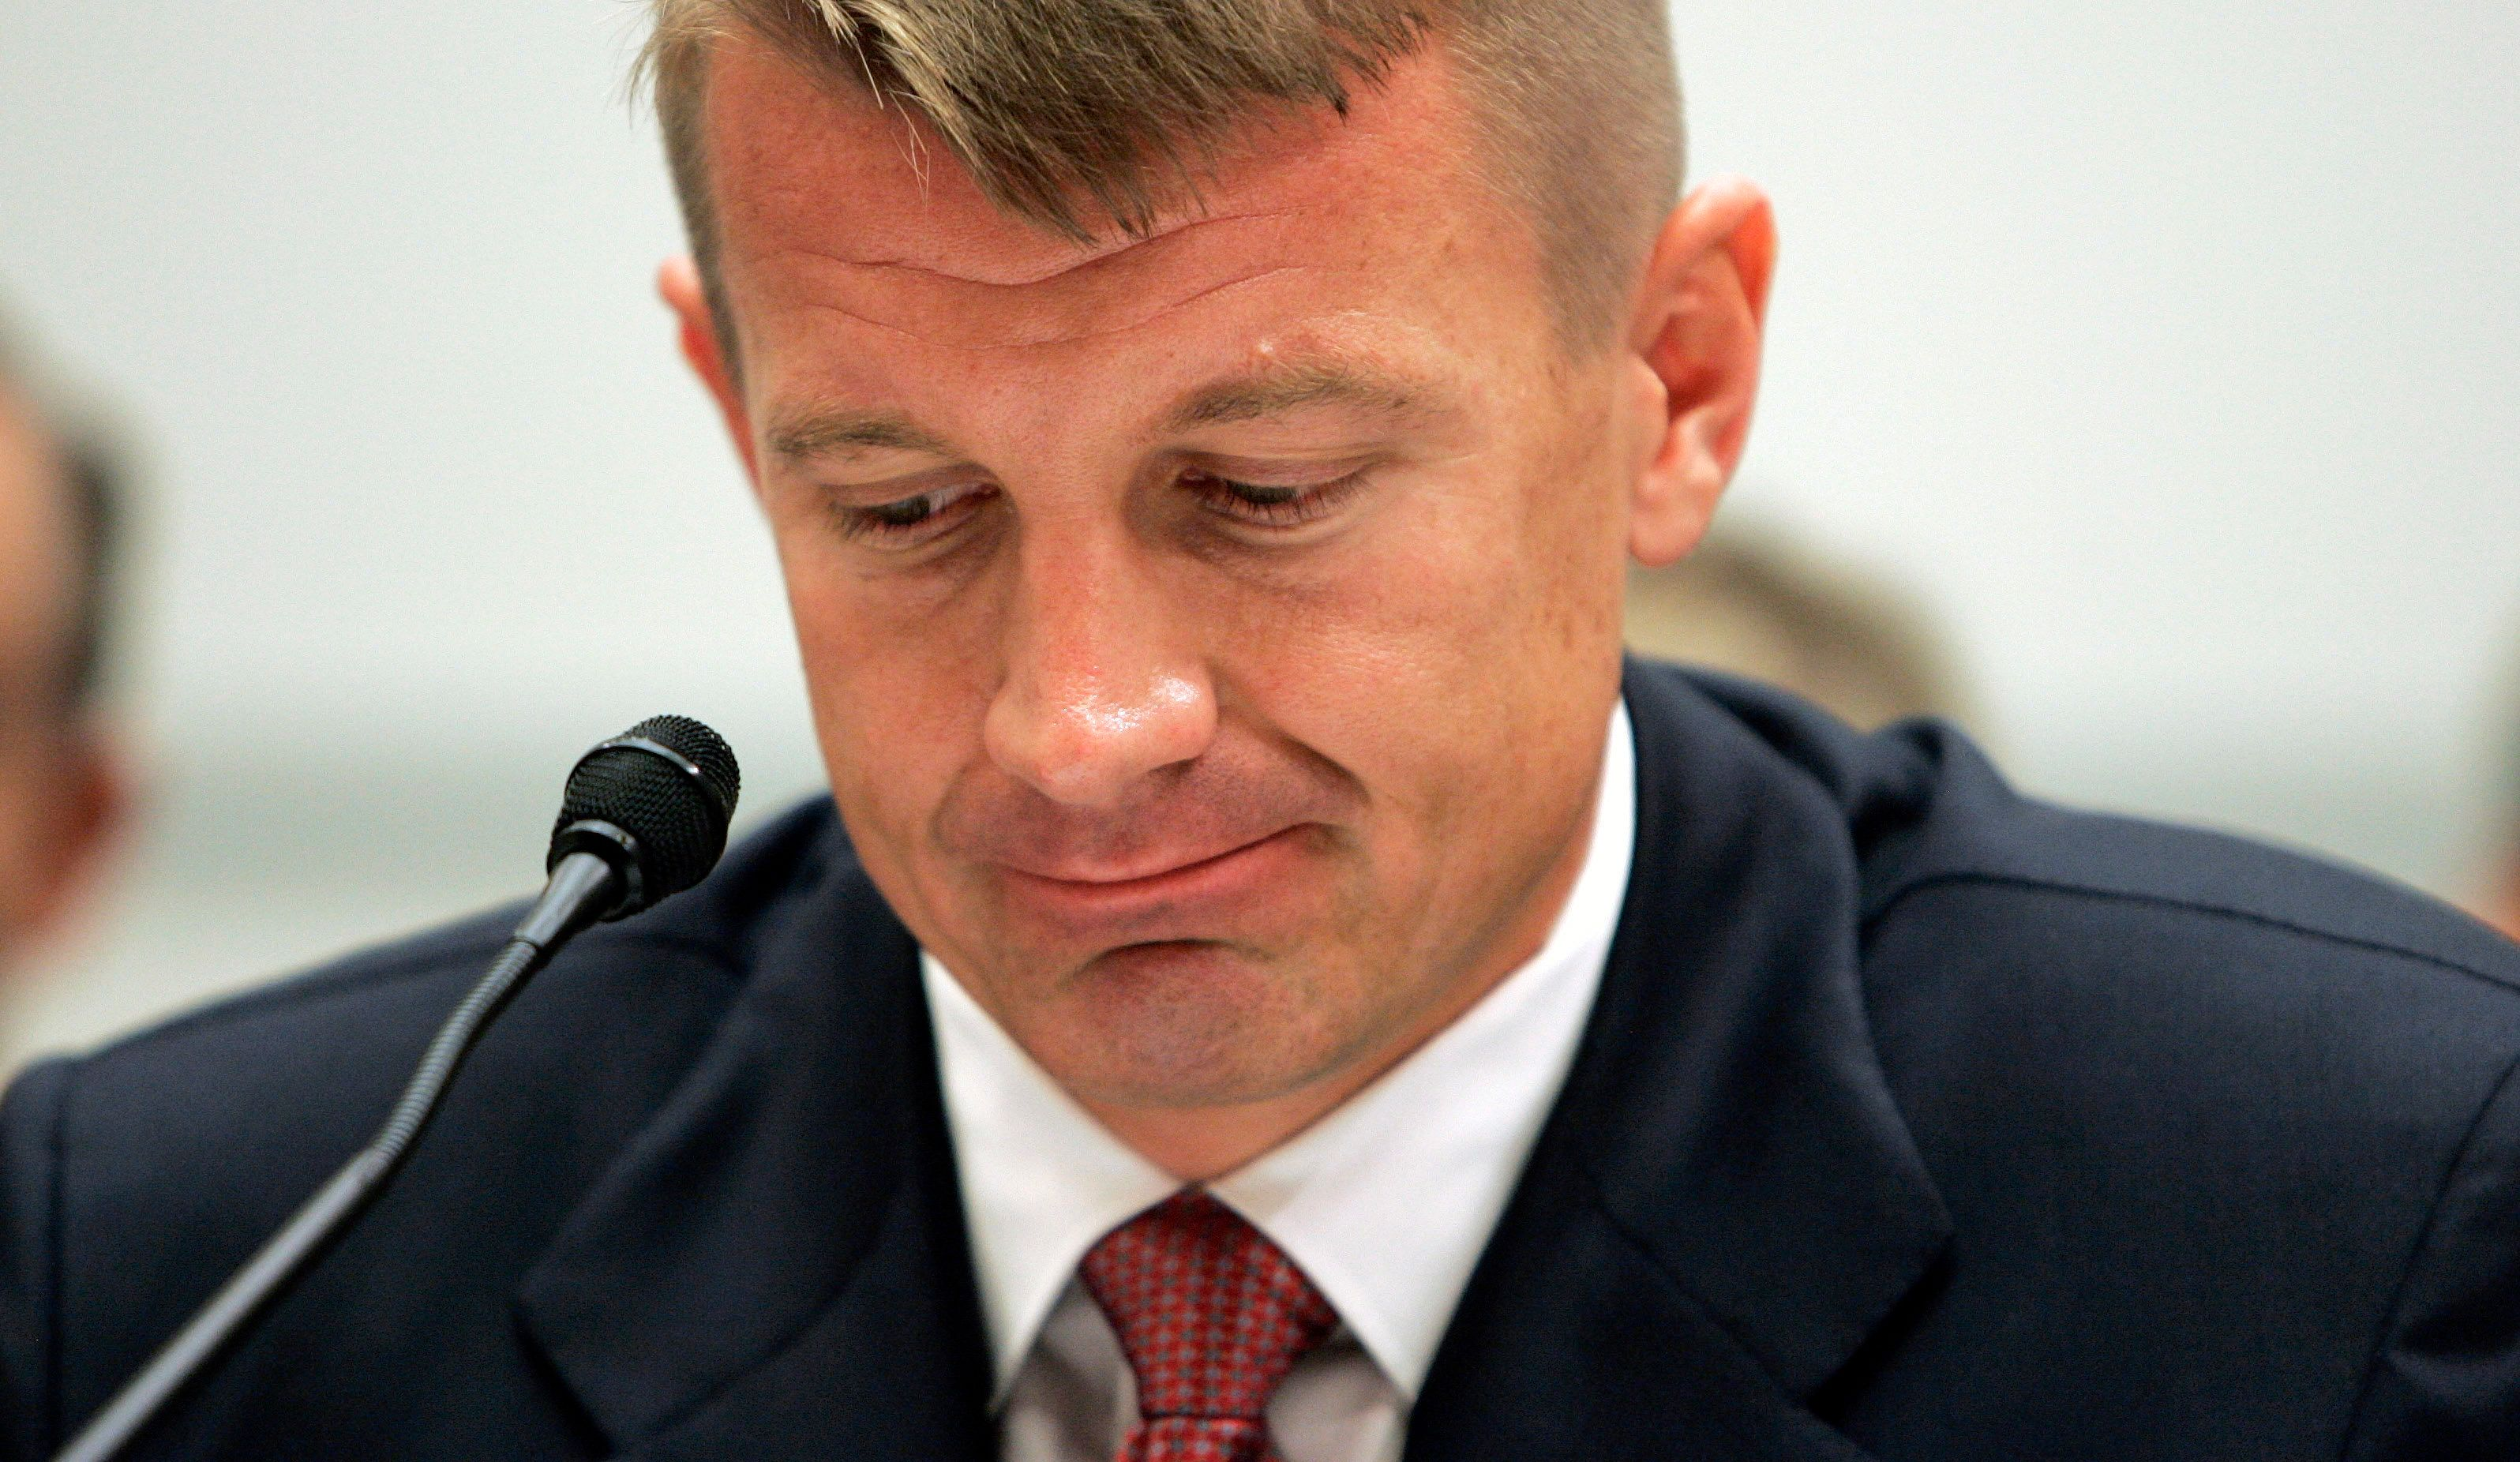 Blackwater Chief Executive Erik Prince testifies before the House Oversight and Government Reform Committee on security contracting in Iraq and Afghanistan on Capitol Hill in Washington, October 2, 2007. Blackwater, under investigation over deadly incidents in Iraq, defended its role on Tuesday, but lawmakers took aim at the company's actions in a Sept. 16 shooting in which 11 Iraqis were killed.        REUTERS/Larry Downing    (UNITED STATES)